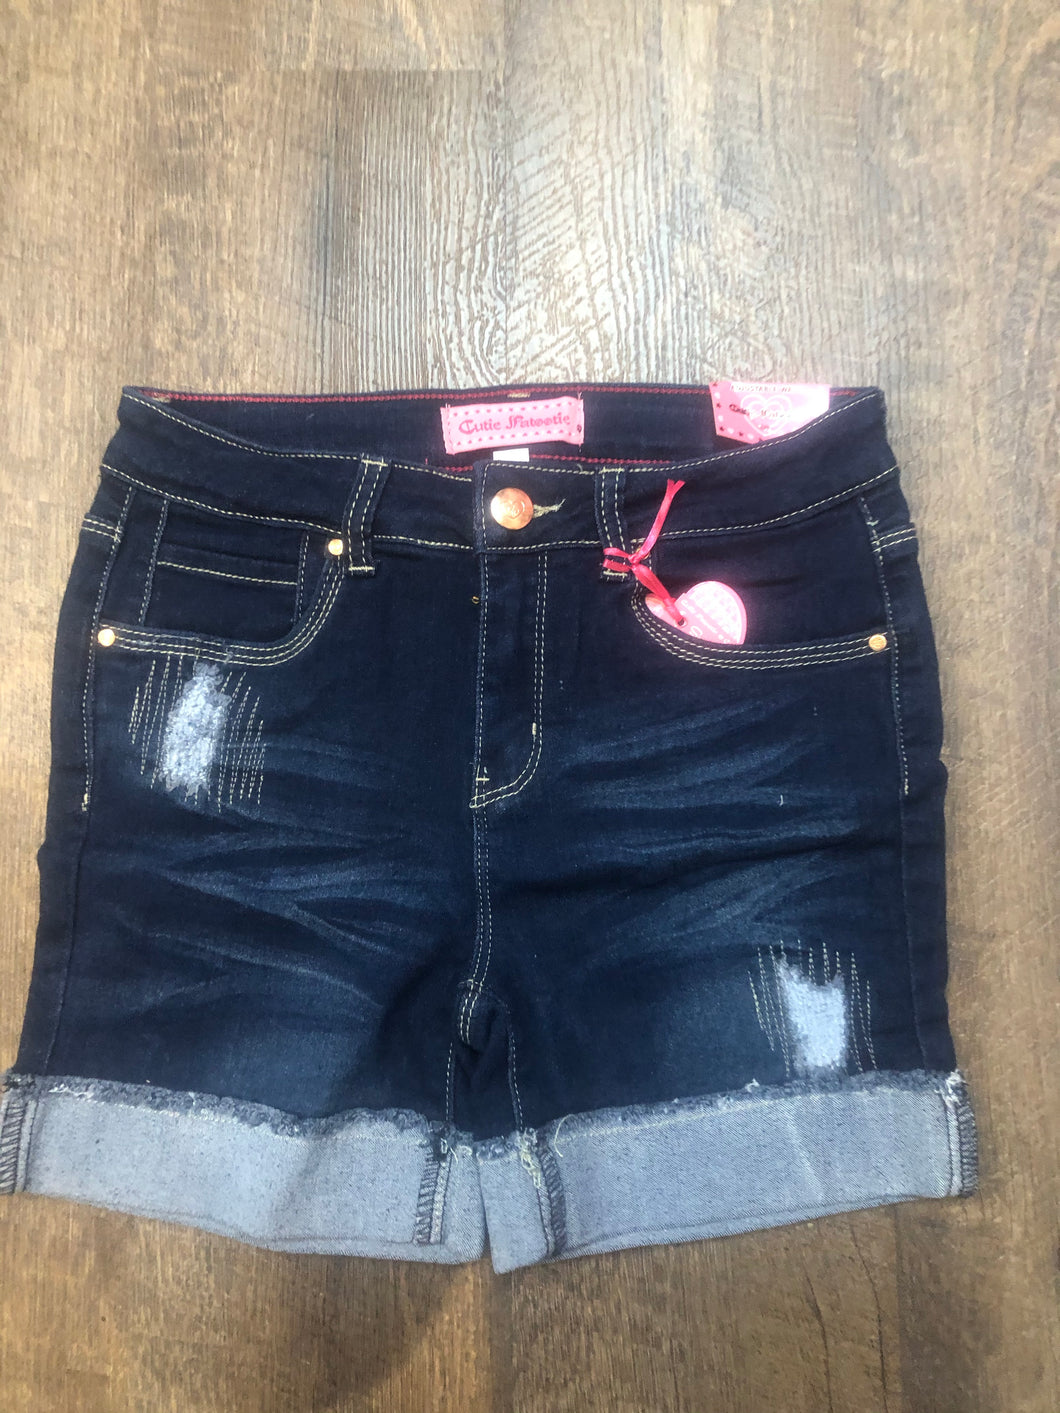 Girls distressed jean shorts